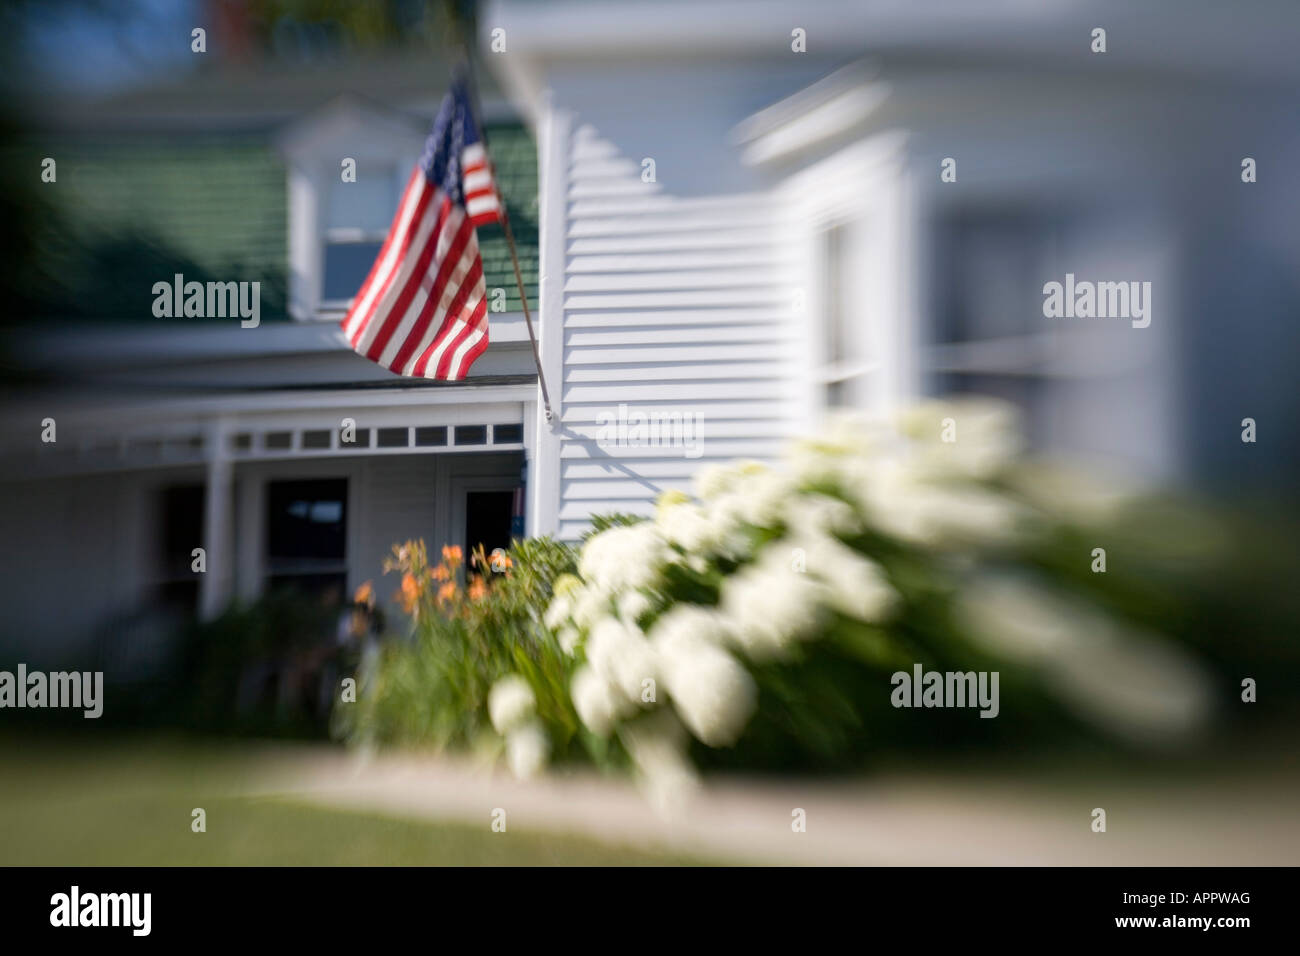 Blurry image of white clapboard house Maine USA New England with American flag and hydrangea flowers - Stock Image